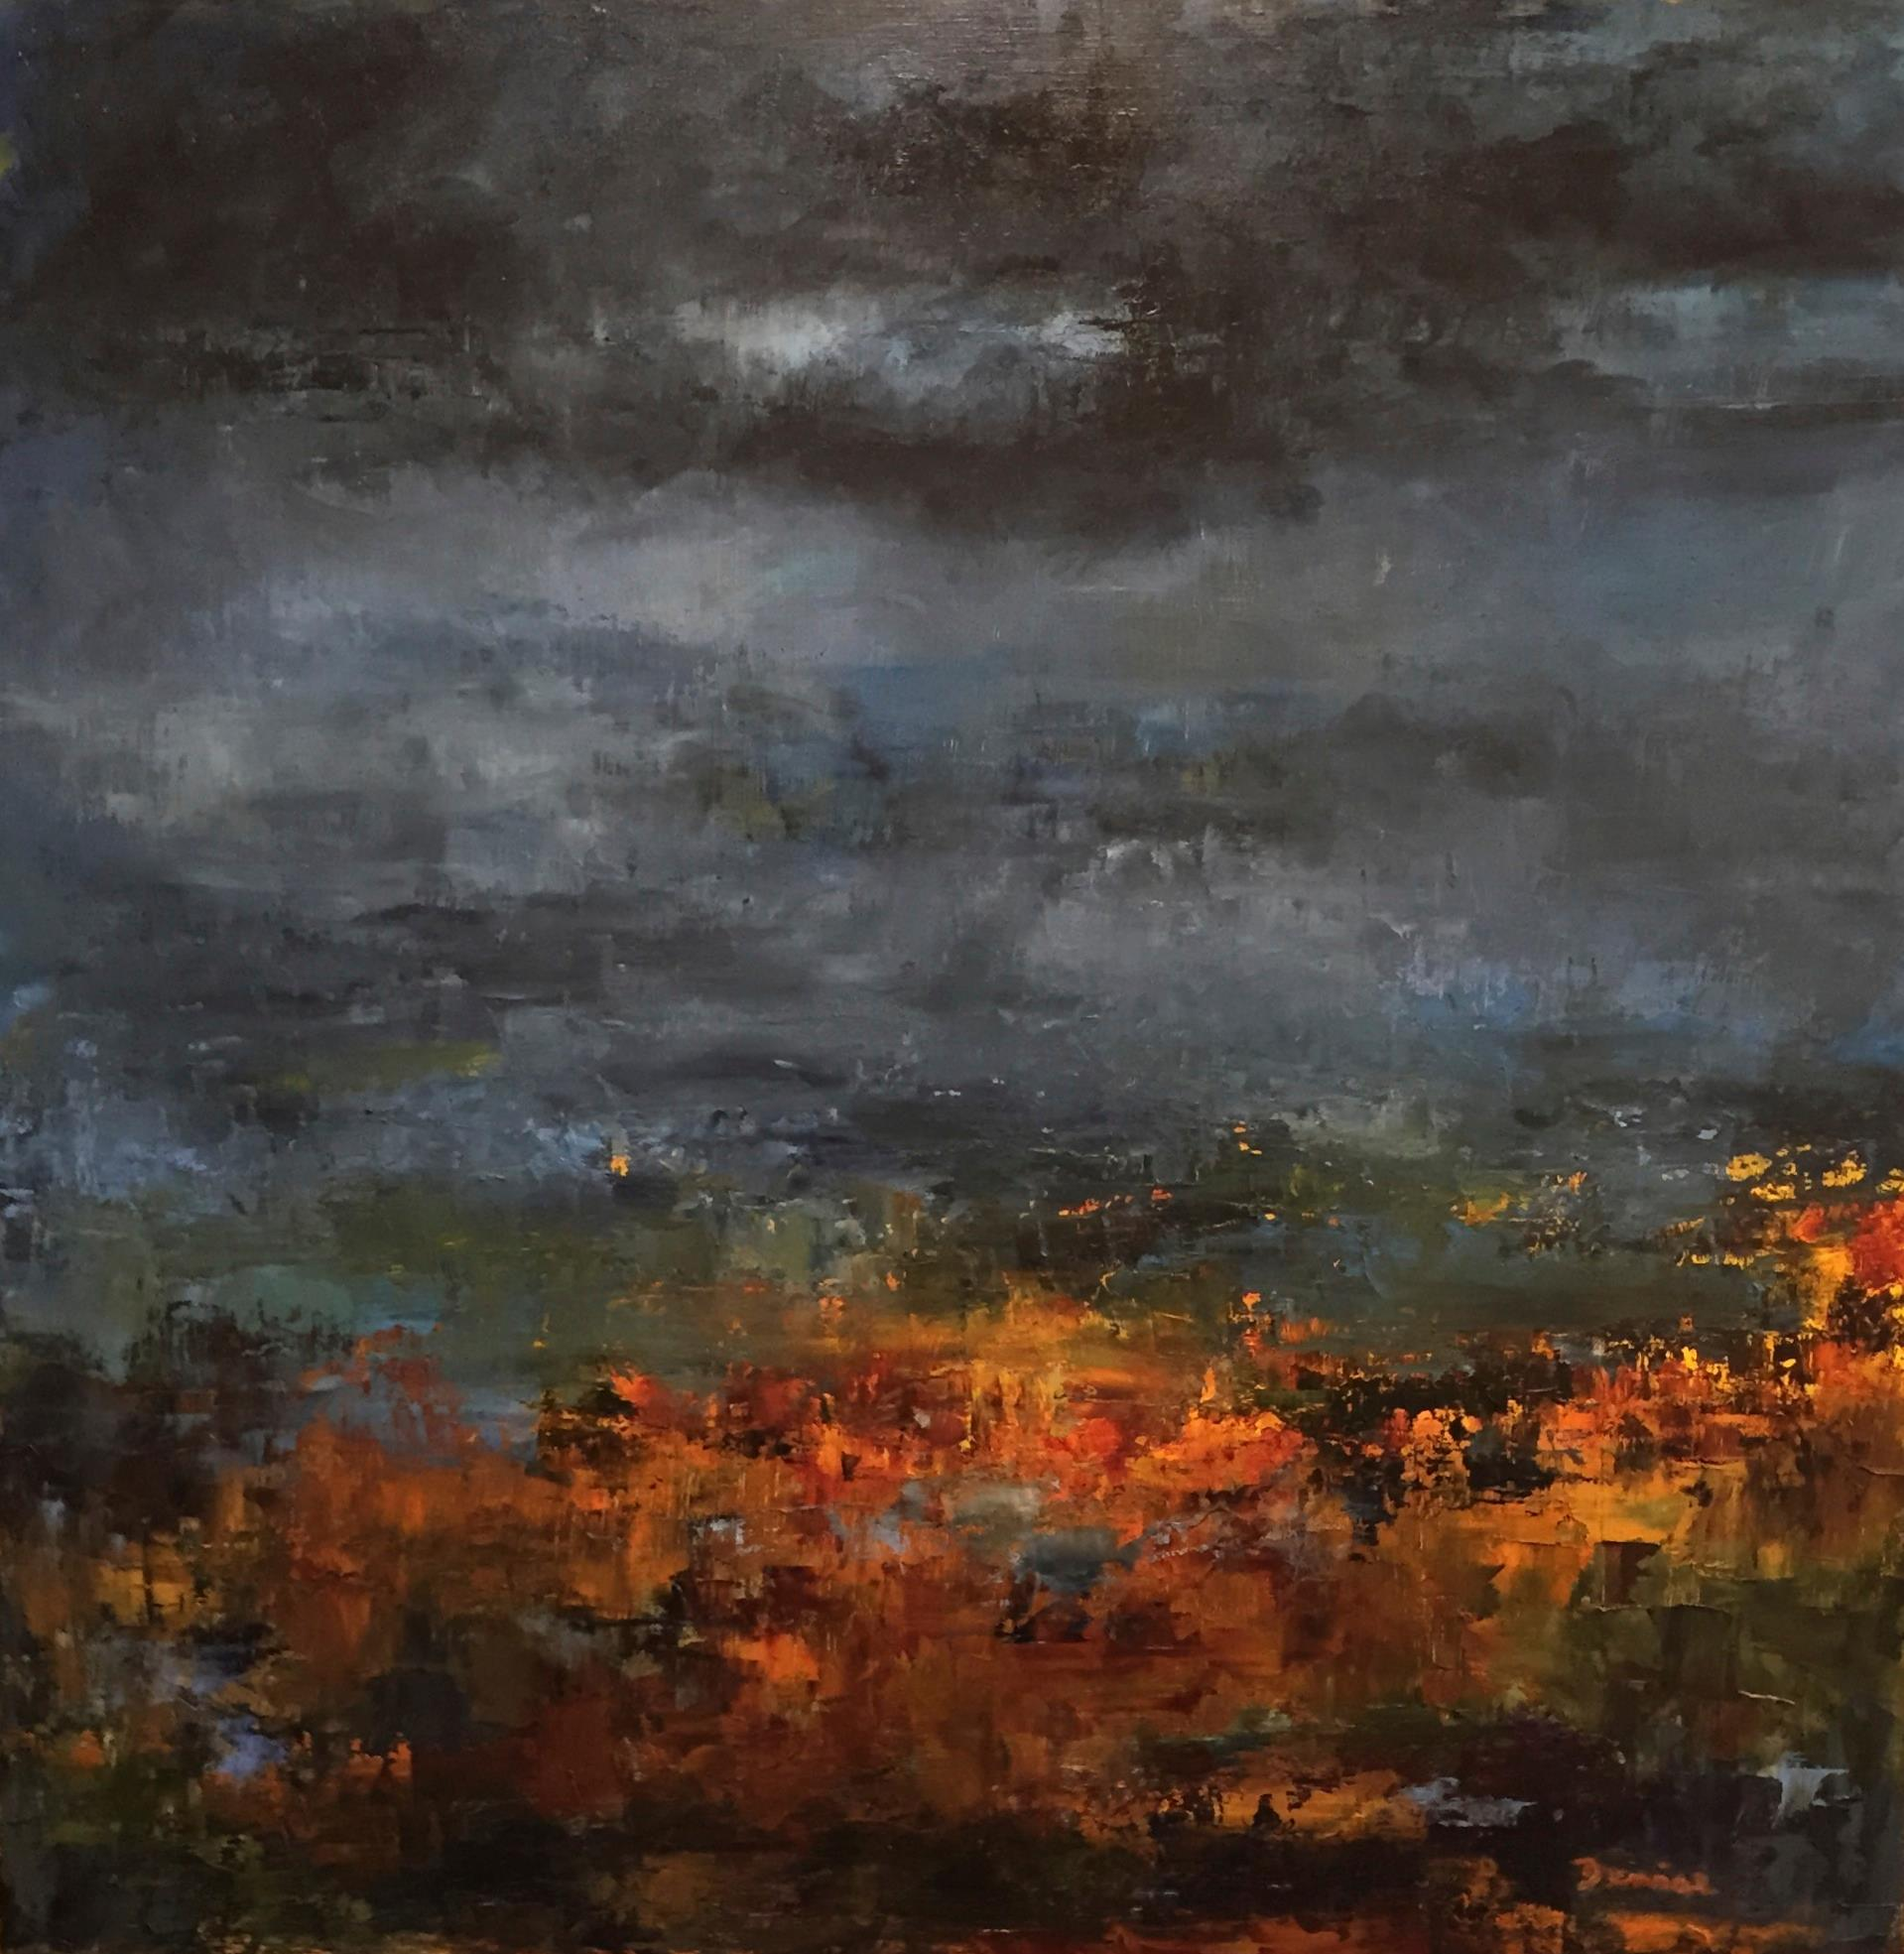 Stormy Skies, Oil on Board, 24 x 24, SOLD